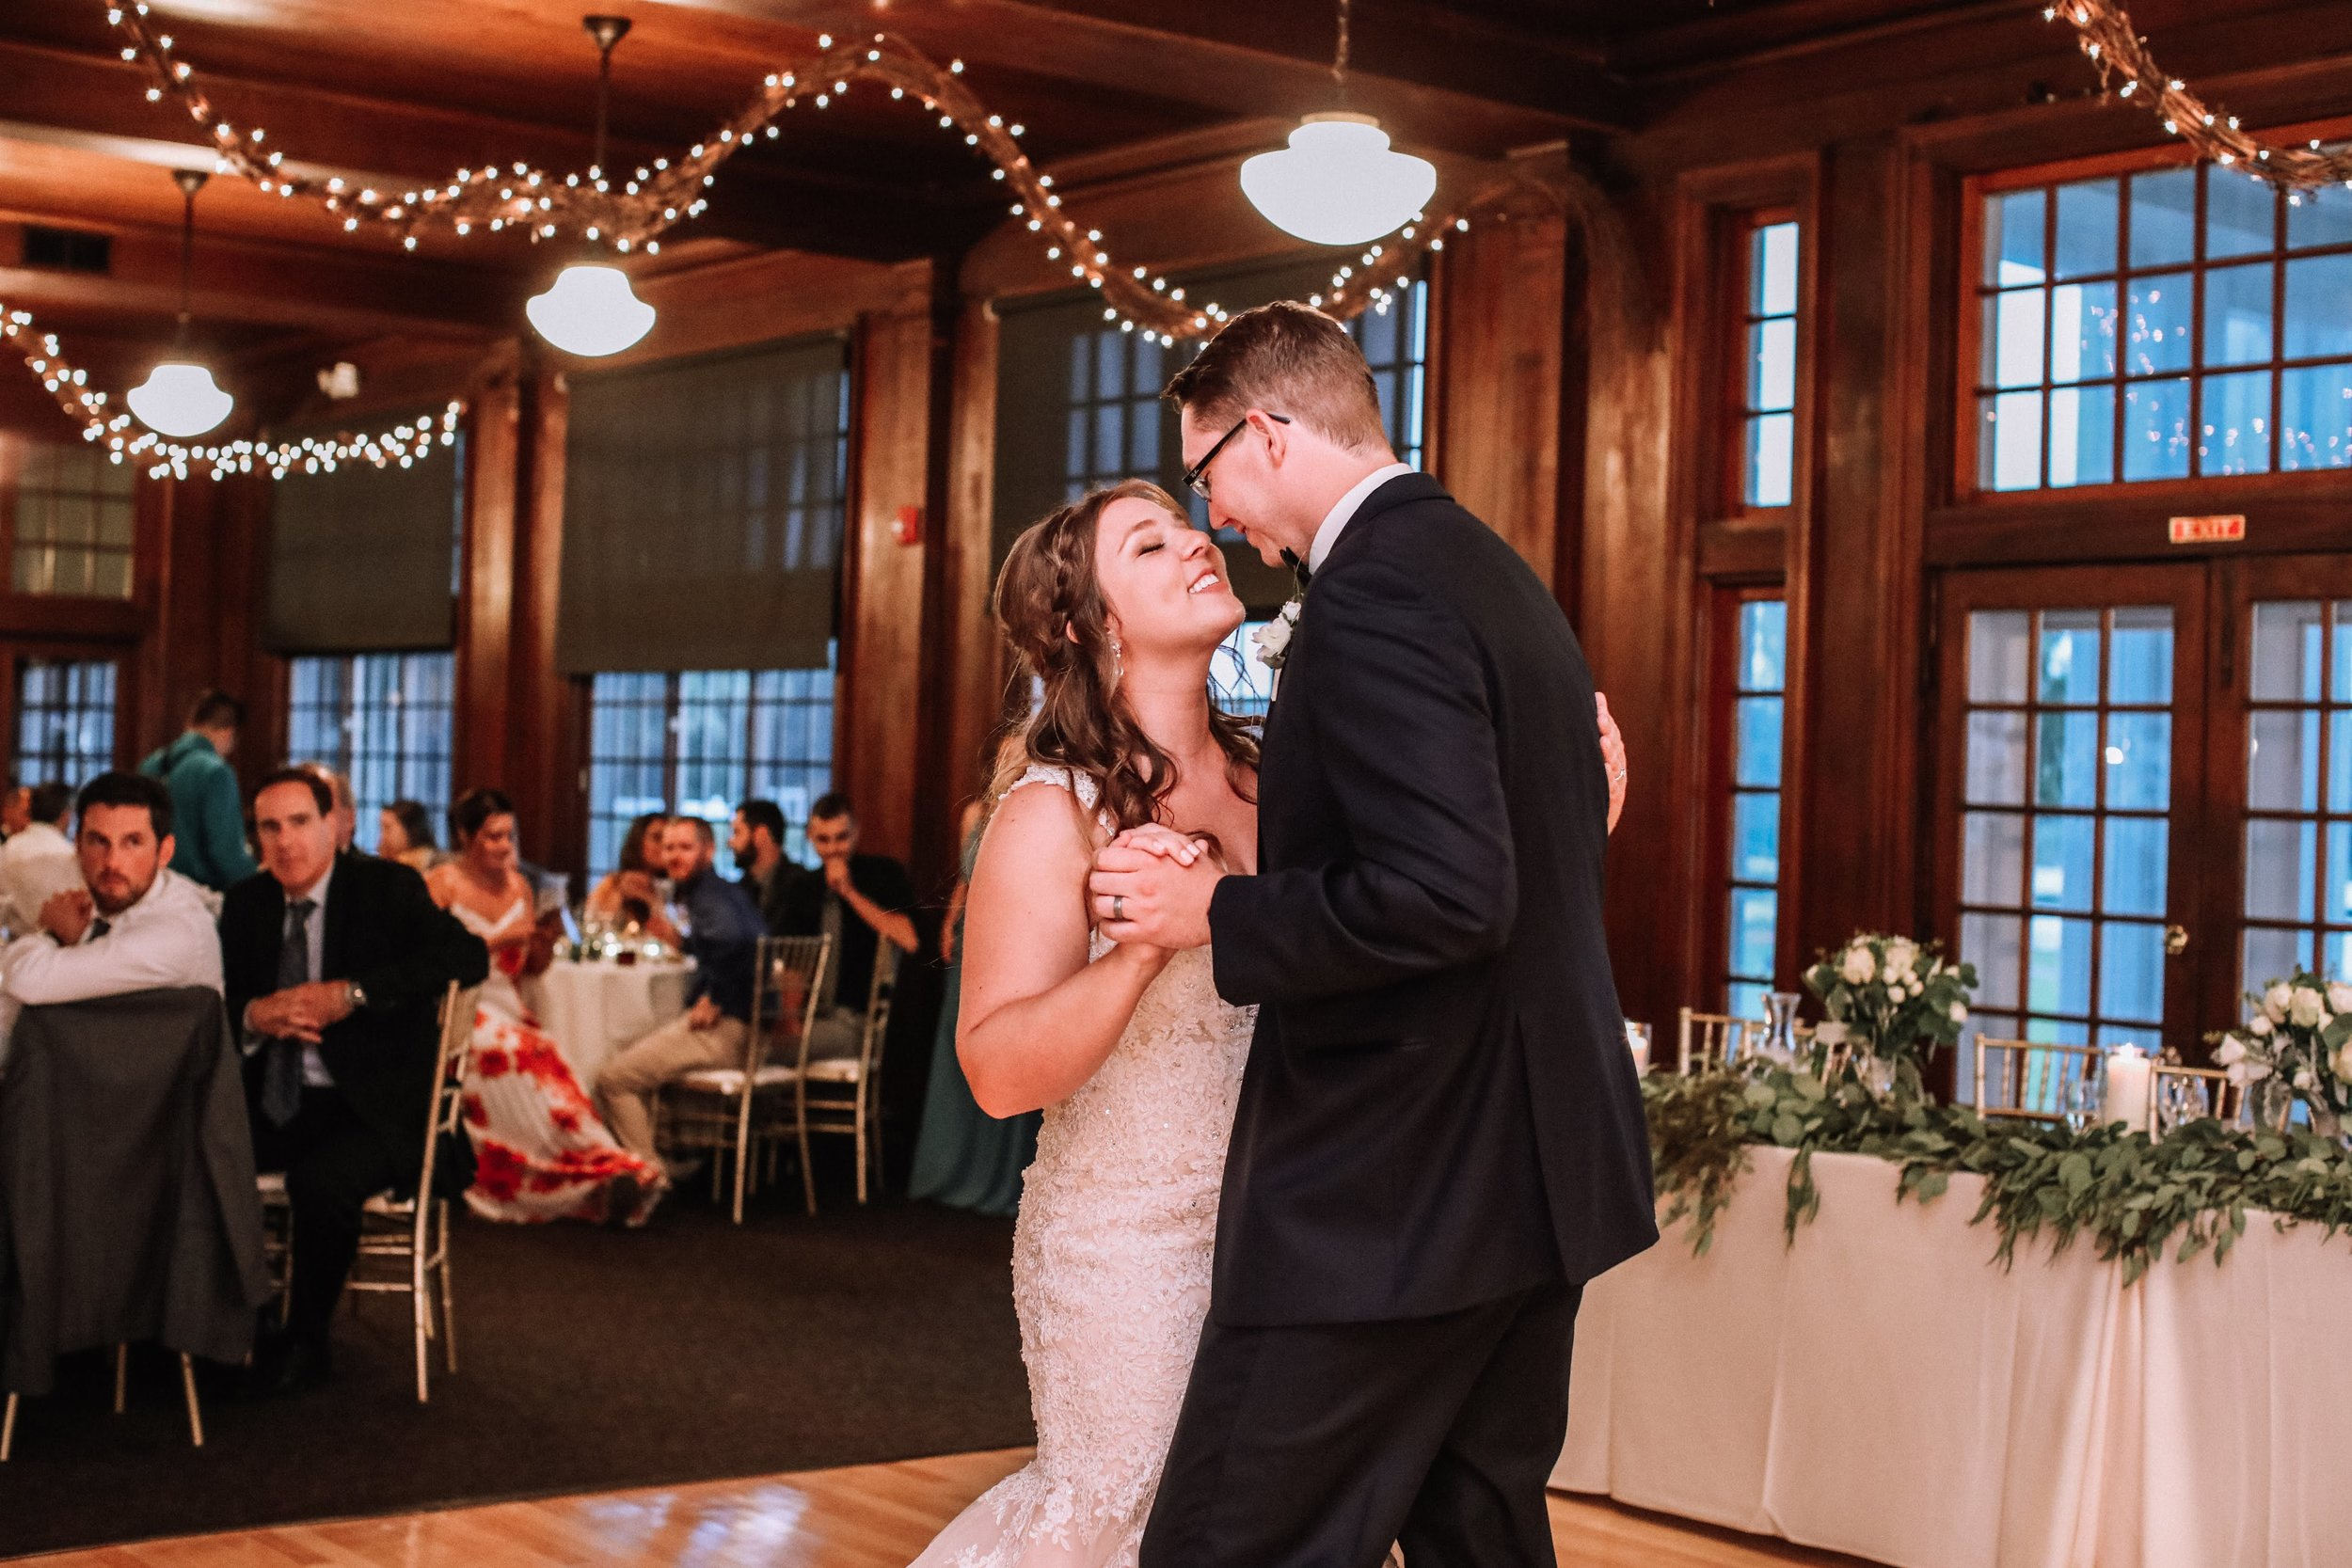 Congratulations to this fabulous and one-of-a-kind couple!